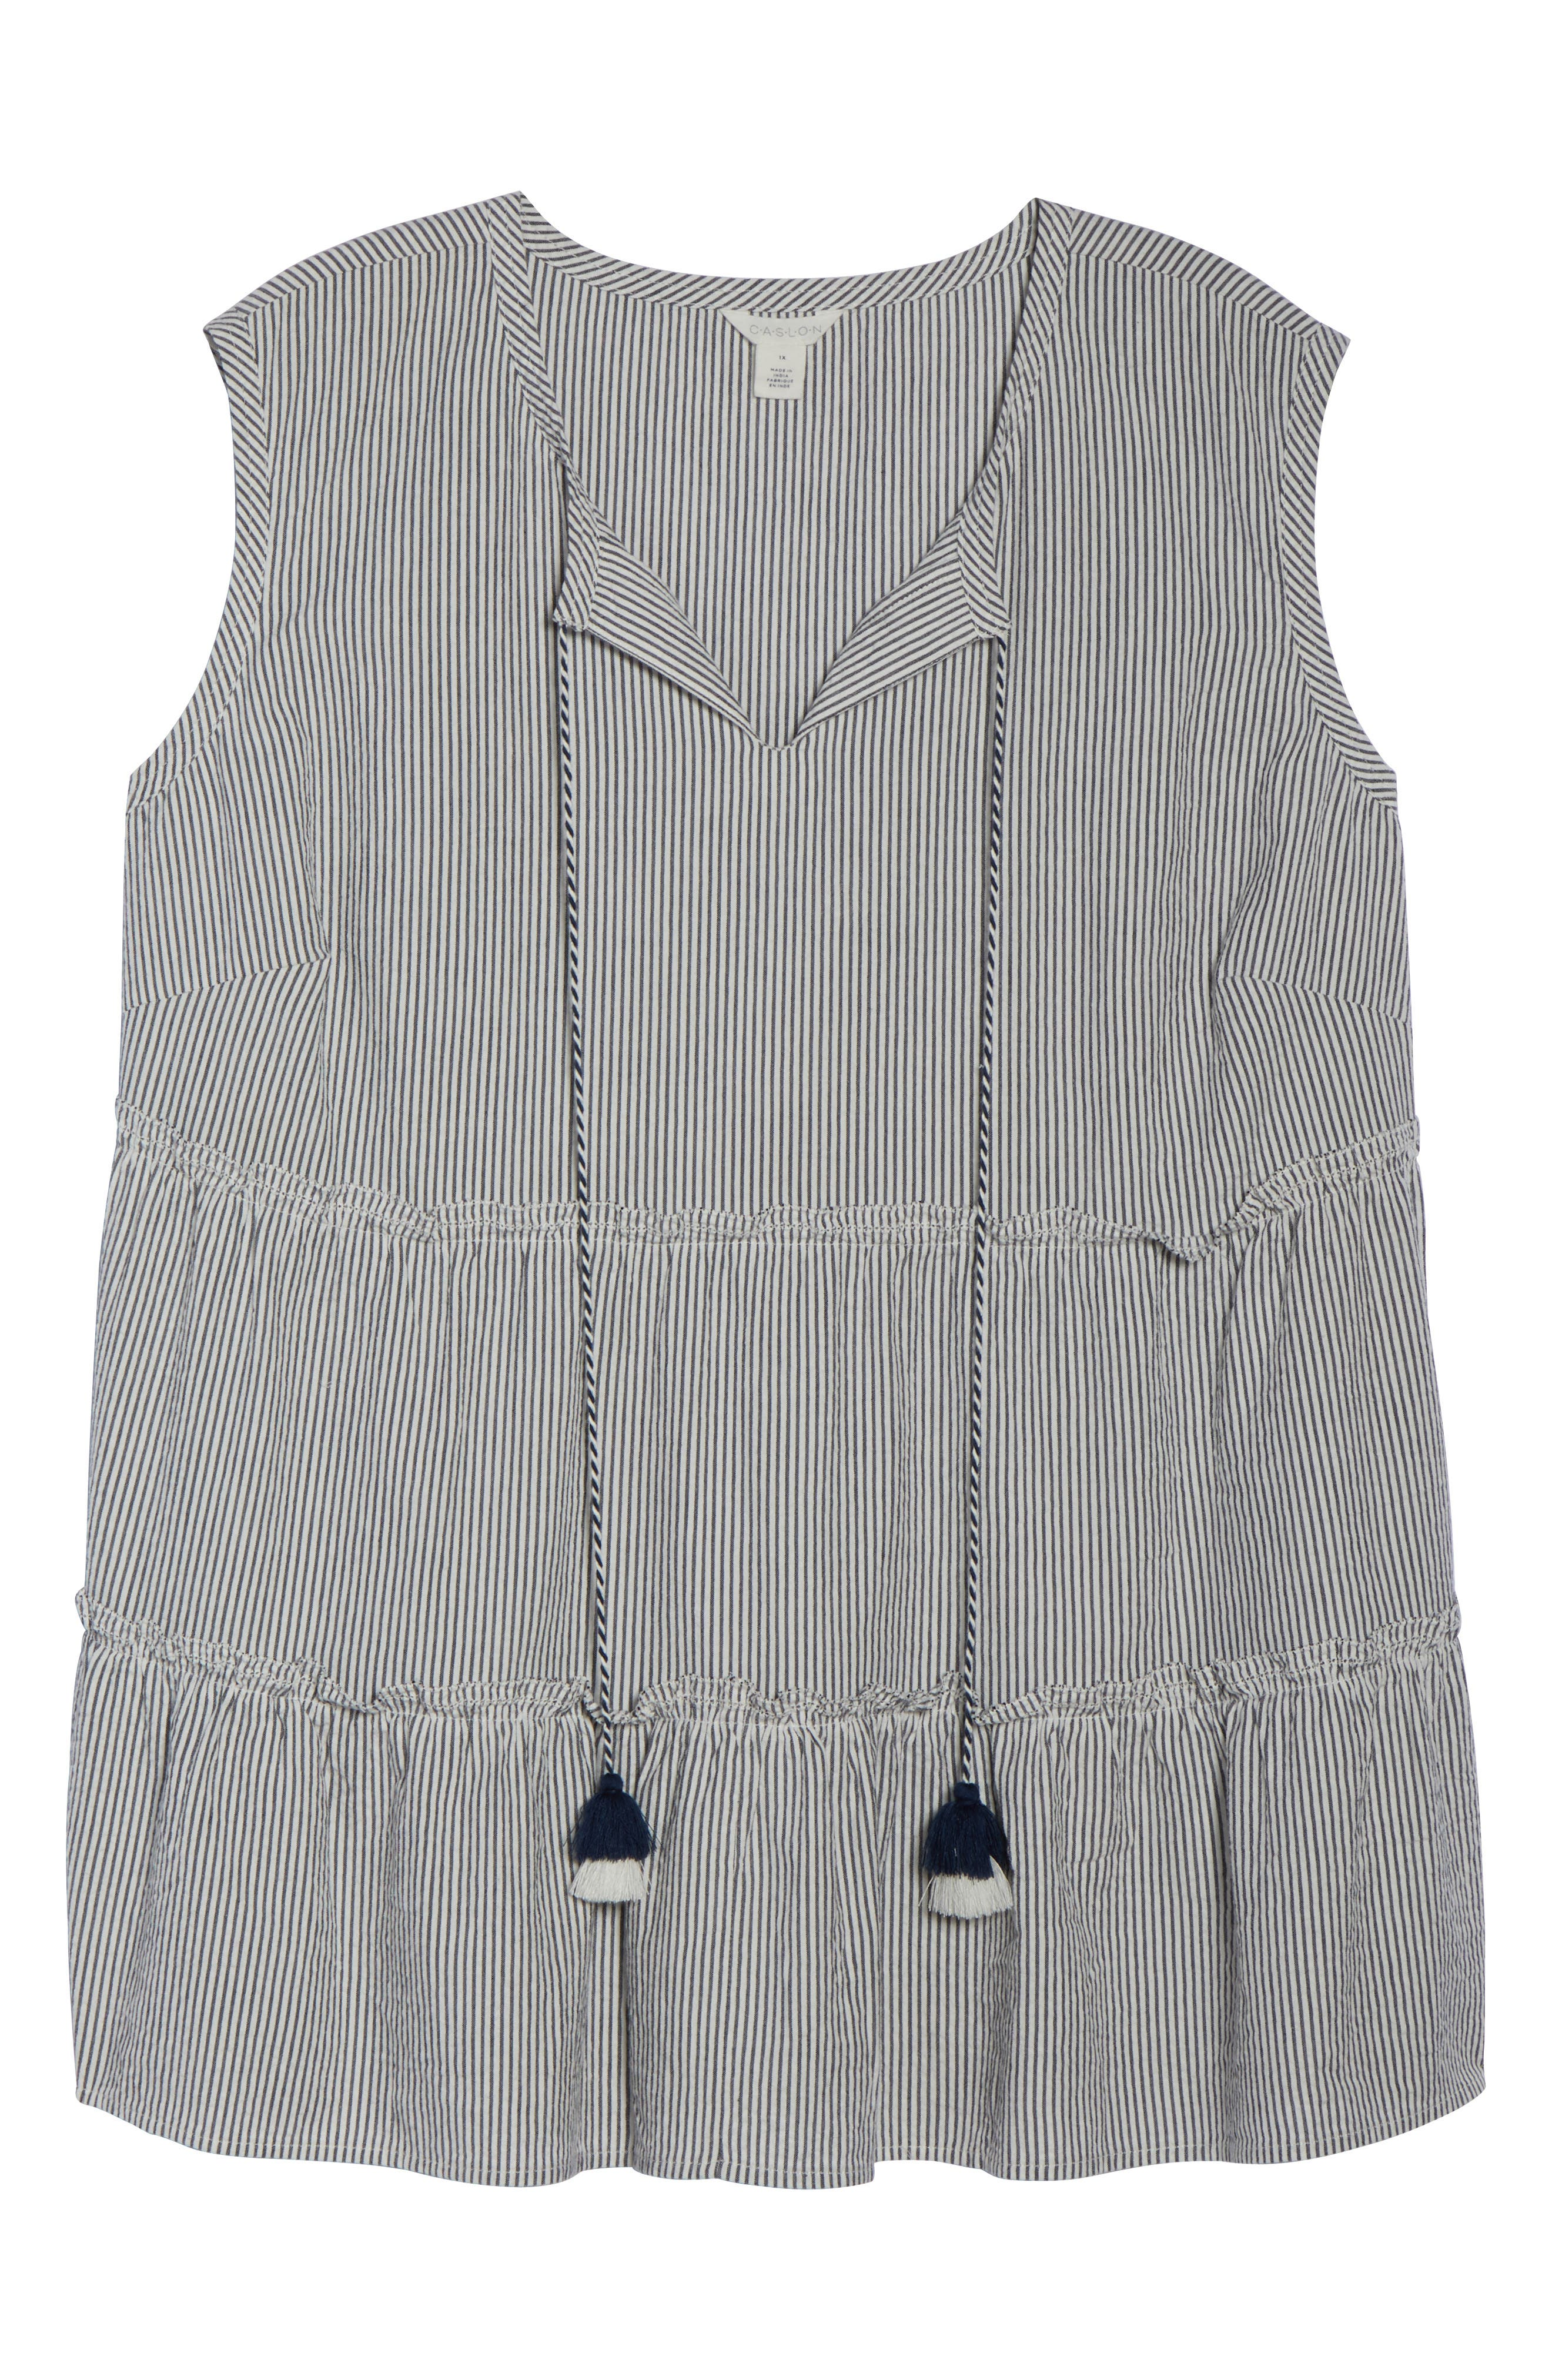 Tassel Tie Neck Tiered Ruffle Tank,                             Alternate thumbnail 7, color,                             Navy- Ivory Stripe